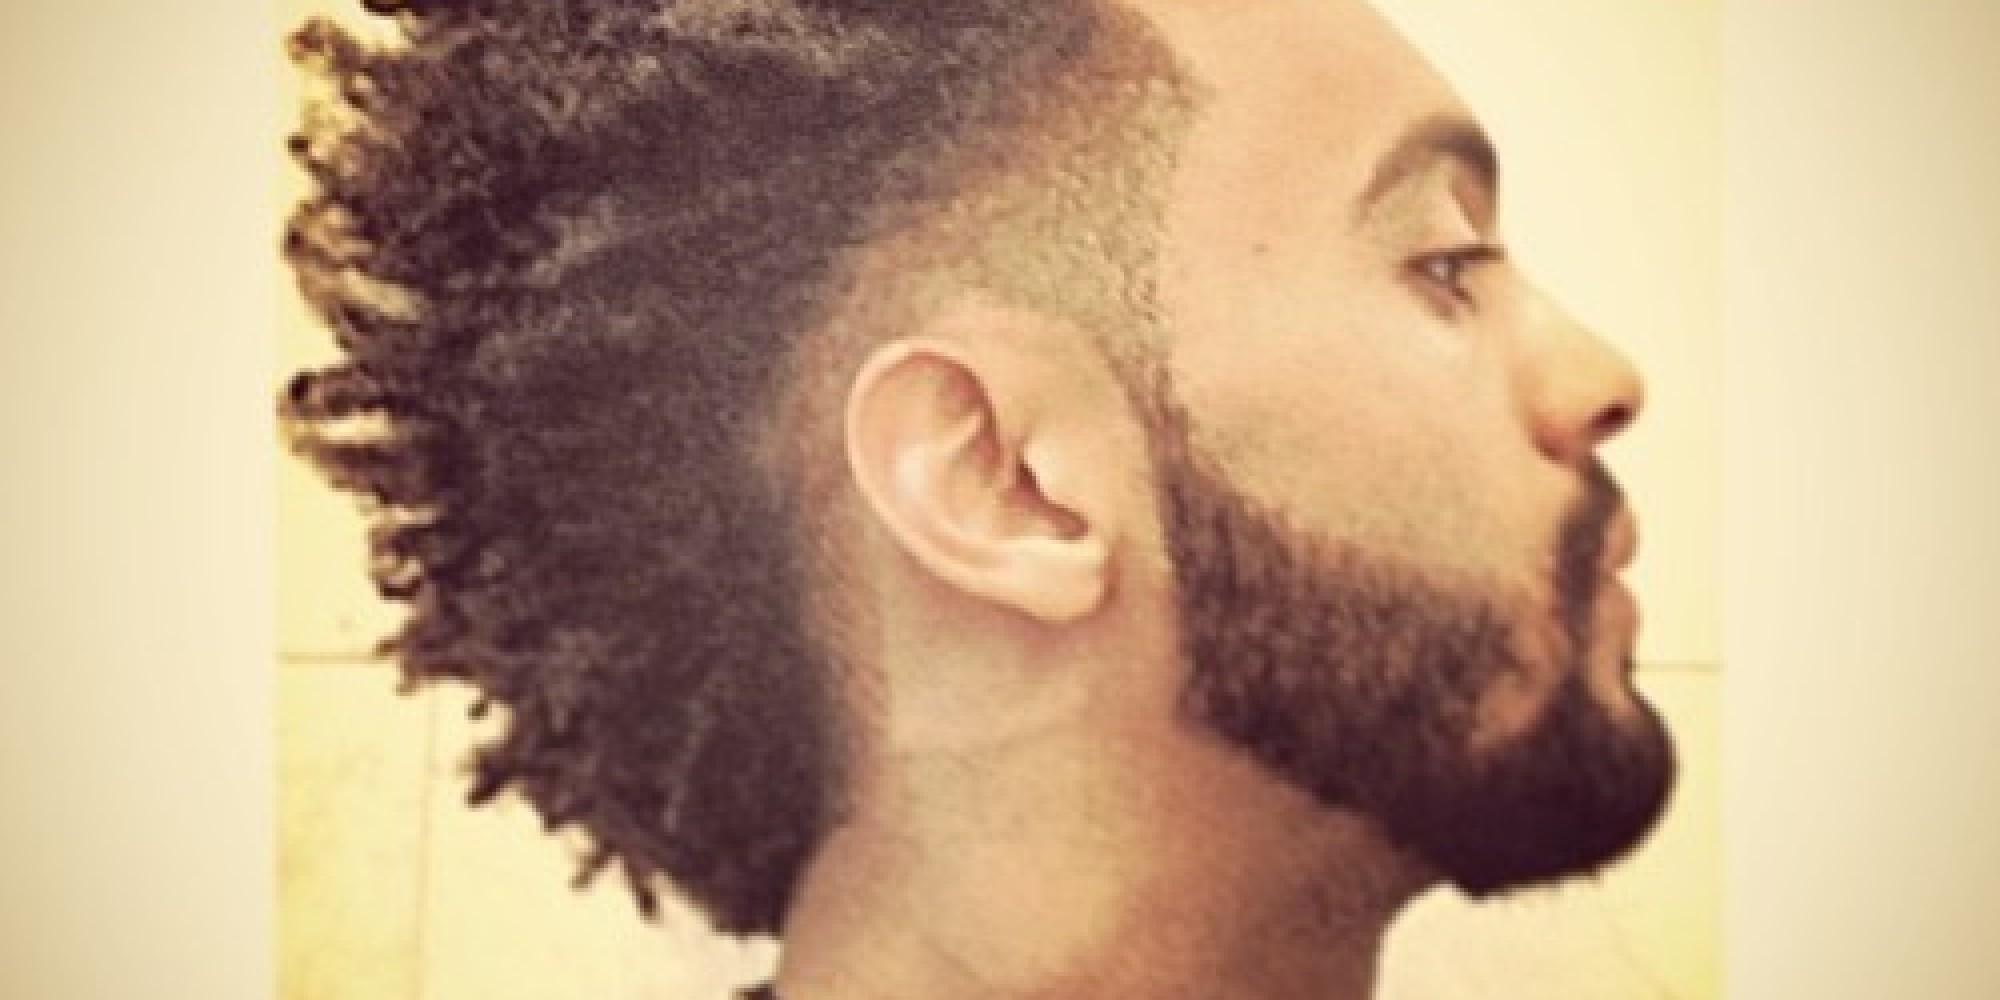 Prime 17 Reasons Why The 39Bearded And Black39 Tumblr Page Is Totally Short Hairstyles Gunalazisus